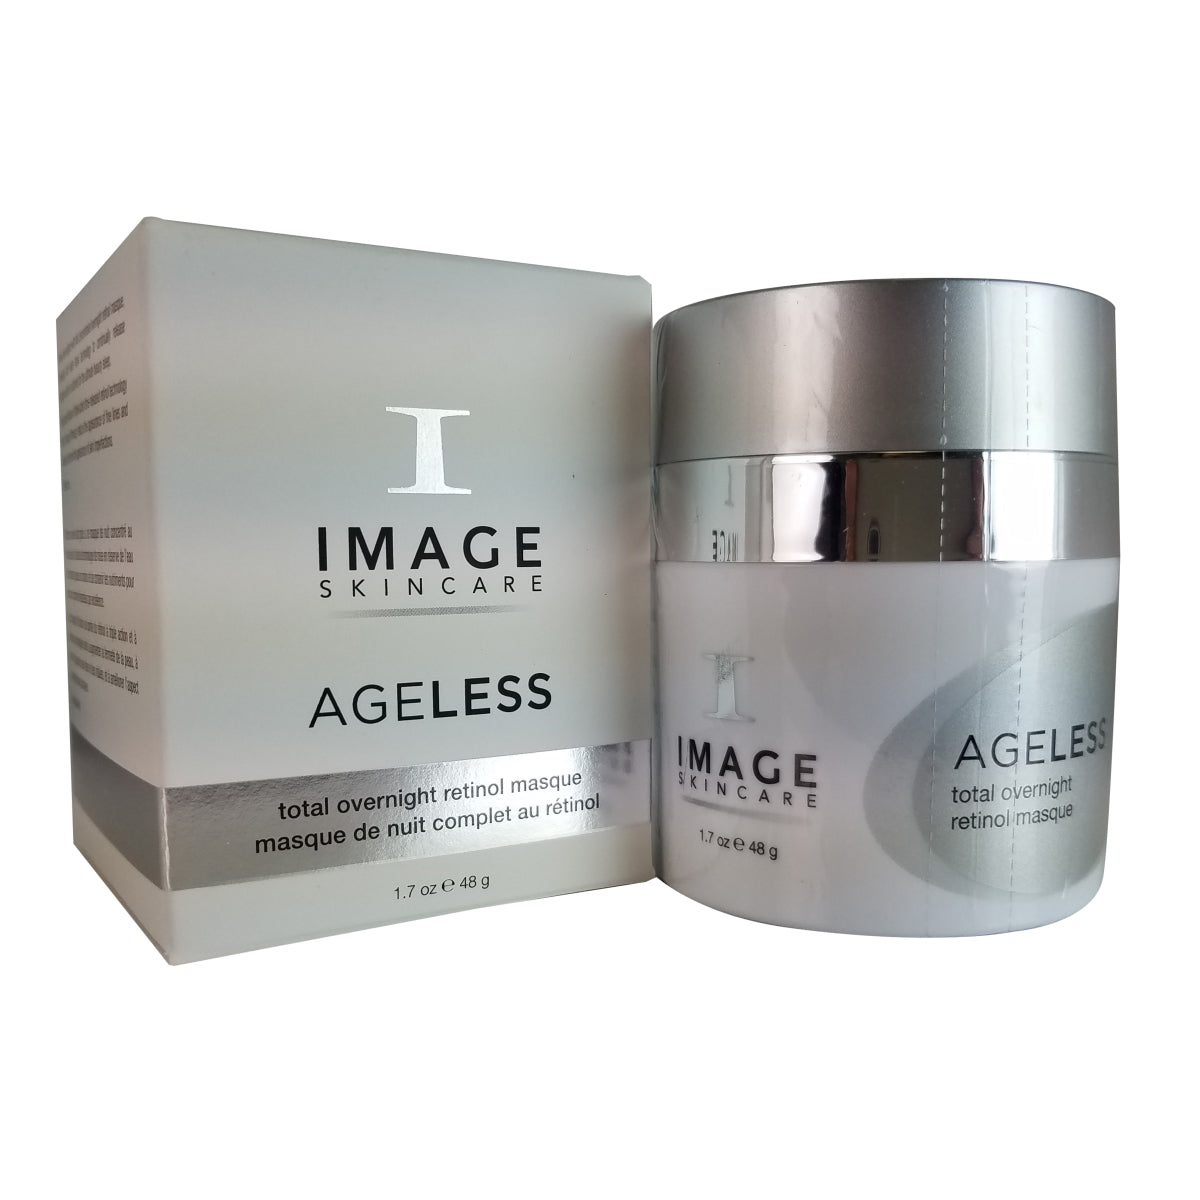 Image Ageless Total Overnight Retinol Face Masque 1.7 oz